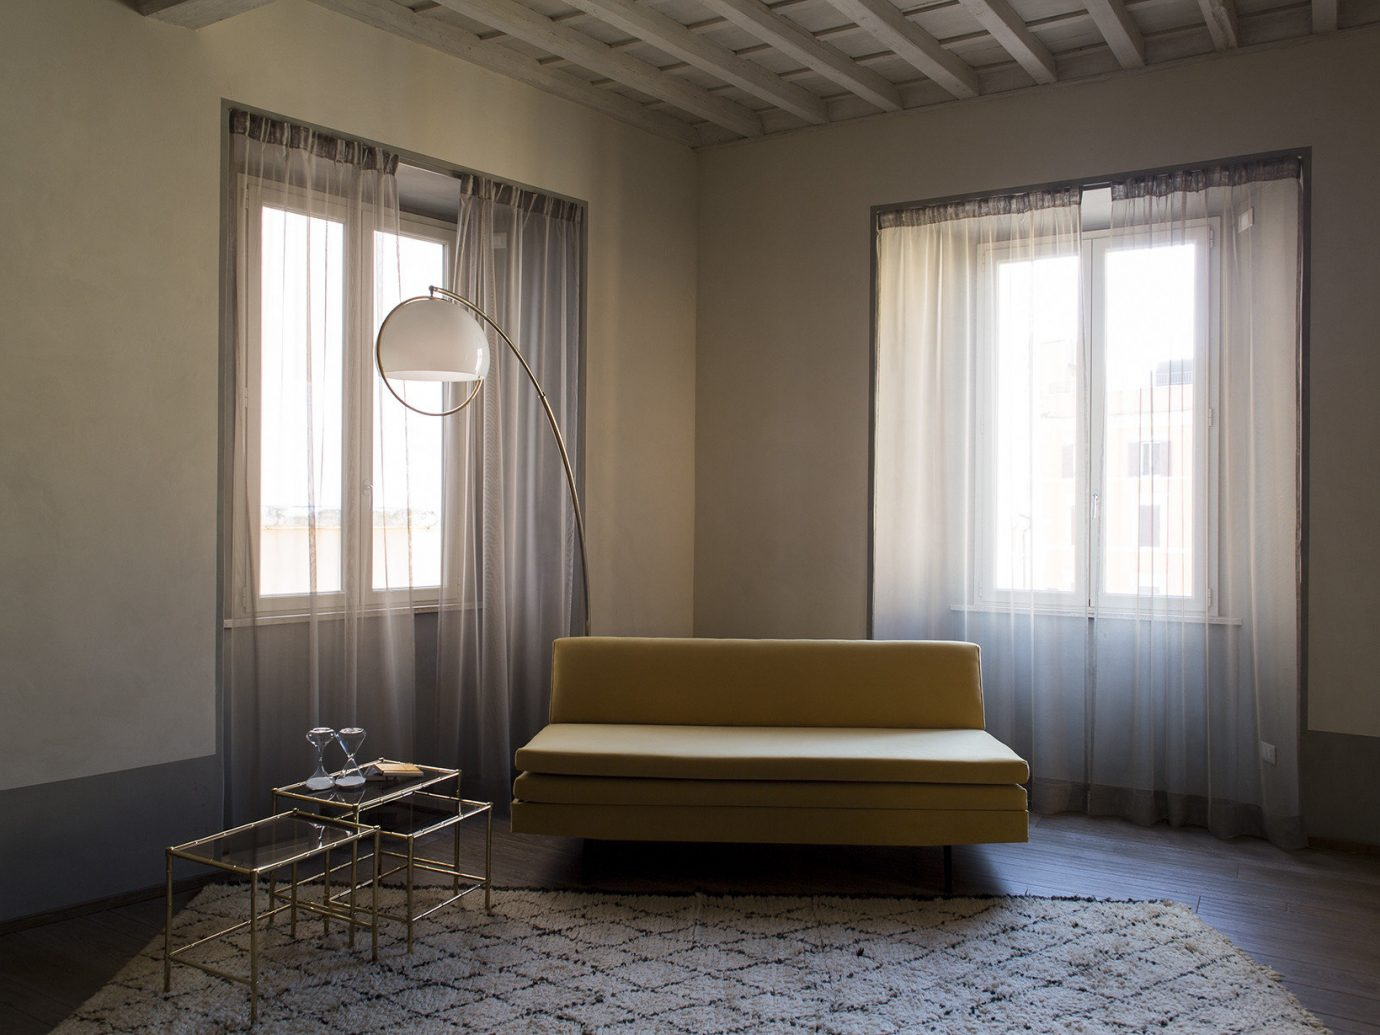 Boutique Hotels Hotels wall indoor floor window room furniture ceiling interior design Architecture daylighting table window treatment flooring apartment window covering loft interior designer tile tub stone